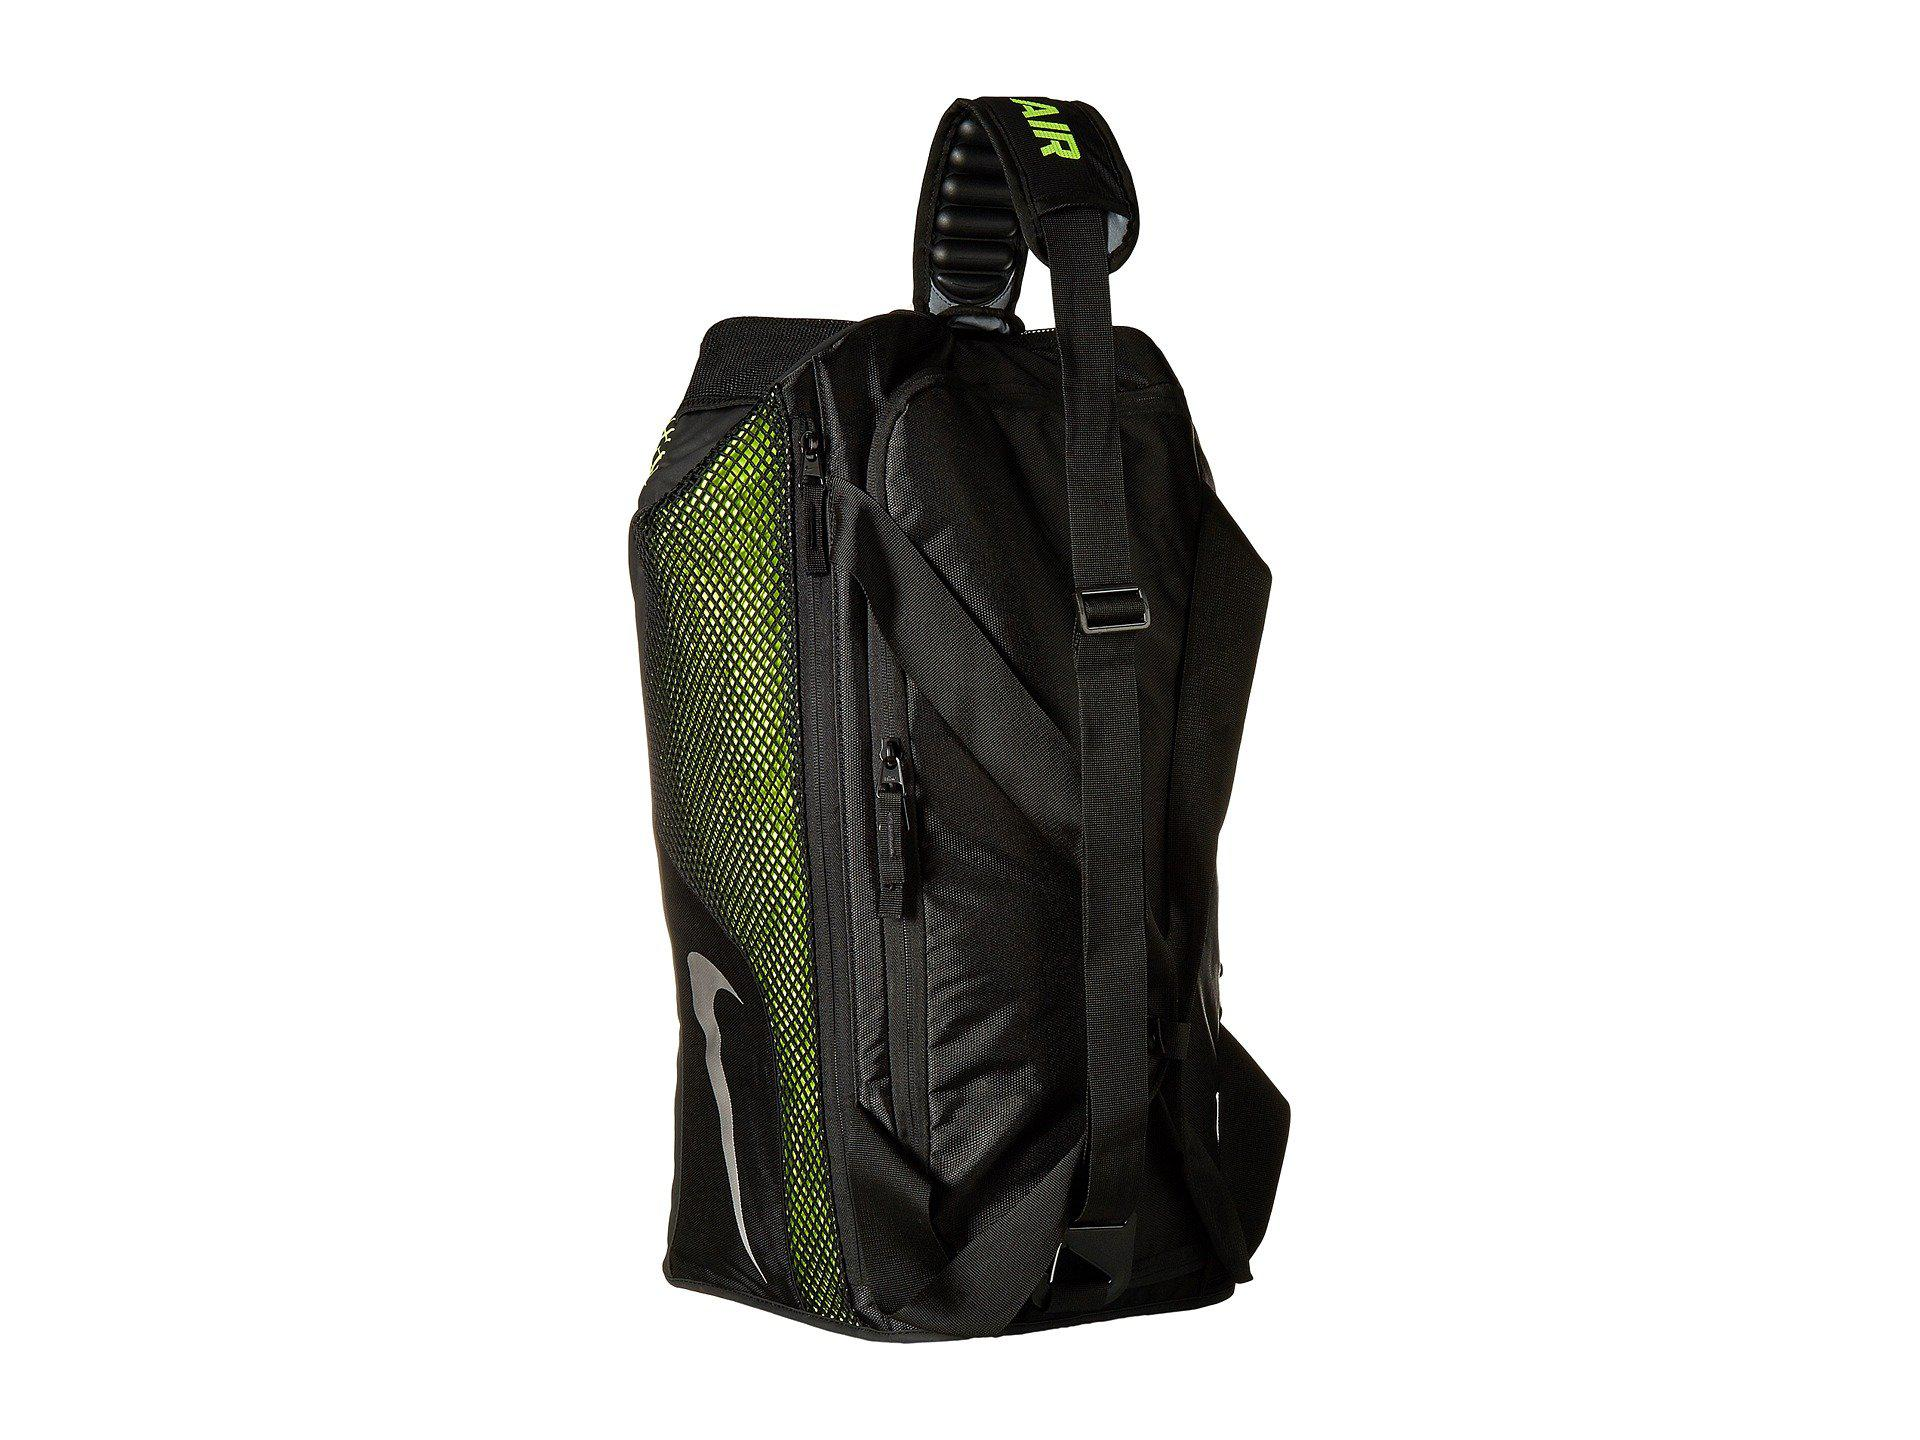 Nike - Multicolor Vapor Max Air Training Medium Duffel Bag  (black volt metallic. View fullscreen 5fdbac8164263